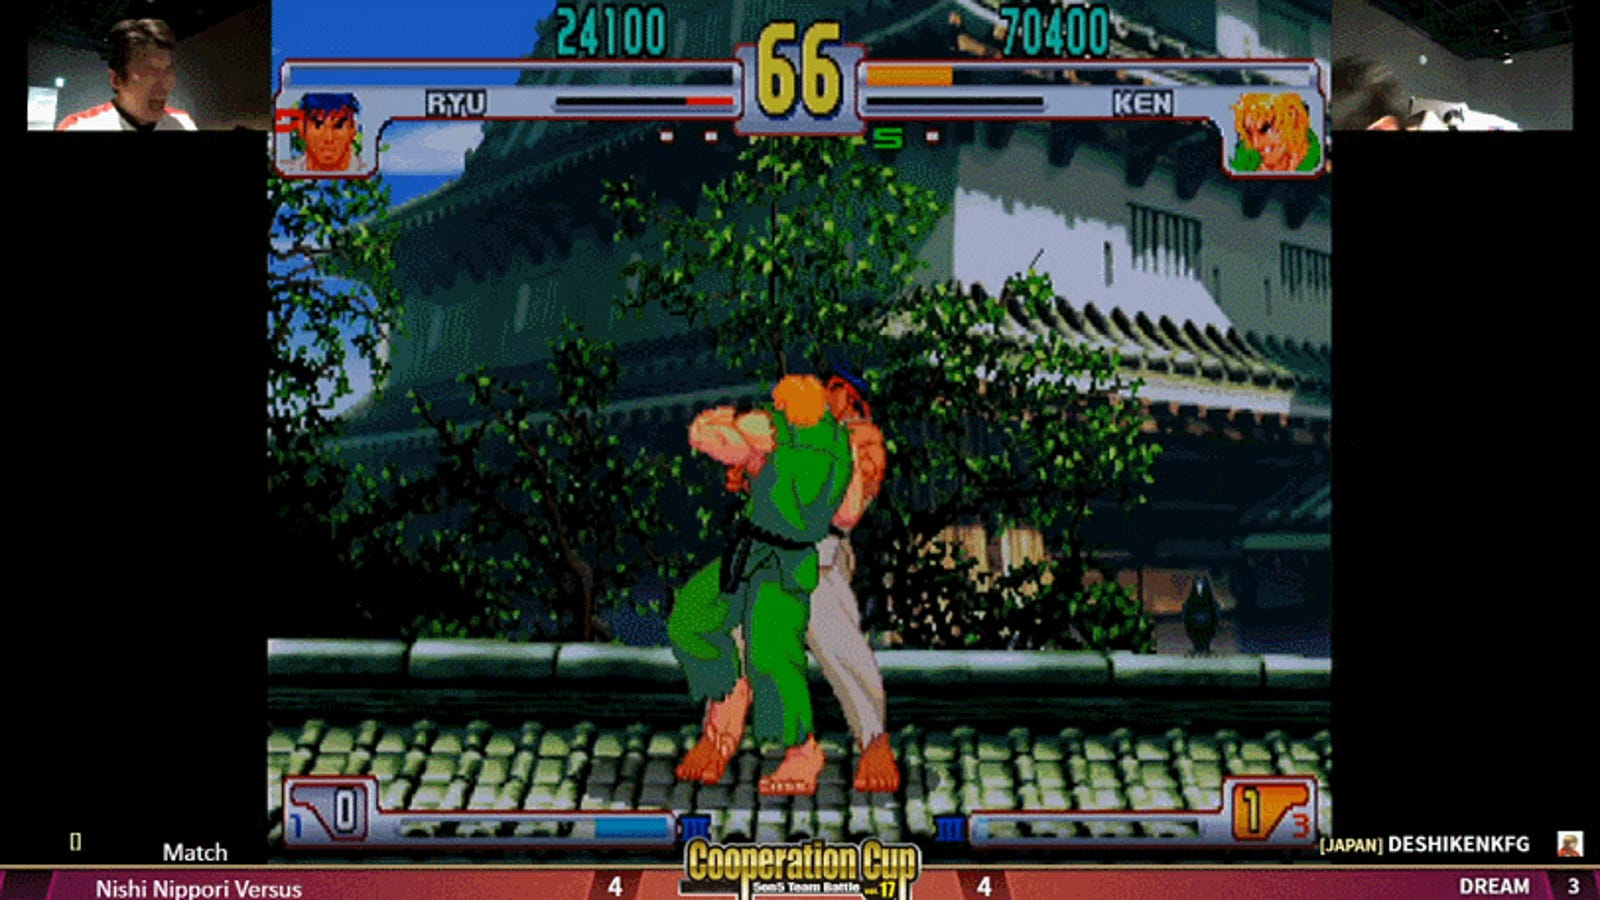 QnA VBage Cooperation Cup's Brutal Format Makes It Pure Street Fighter III: 3rd Strike Bliss